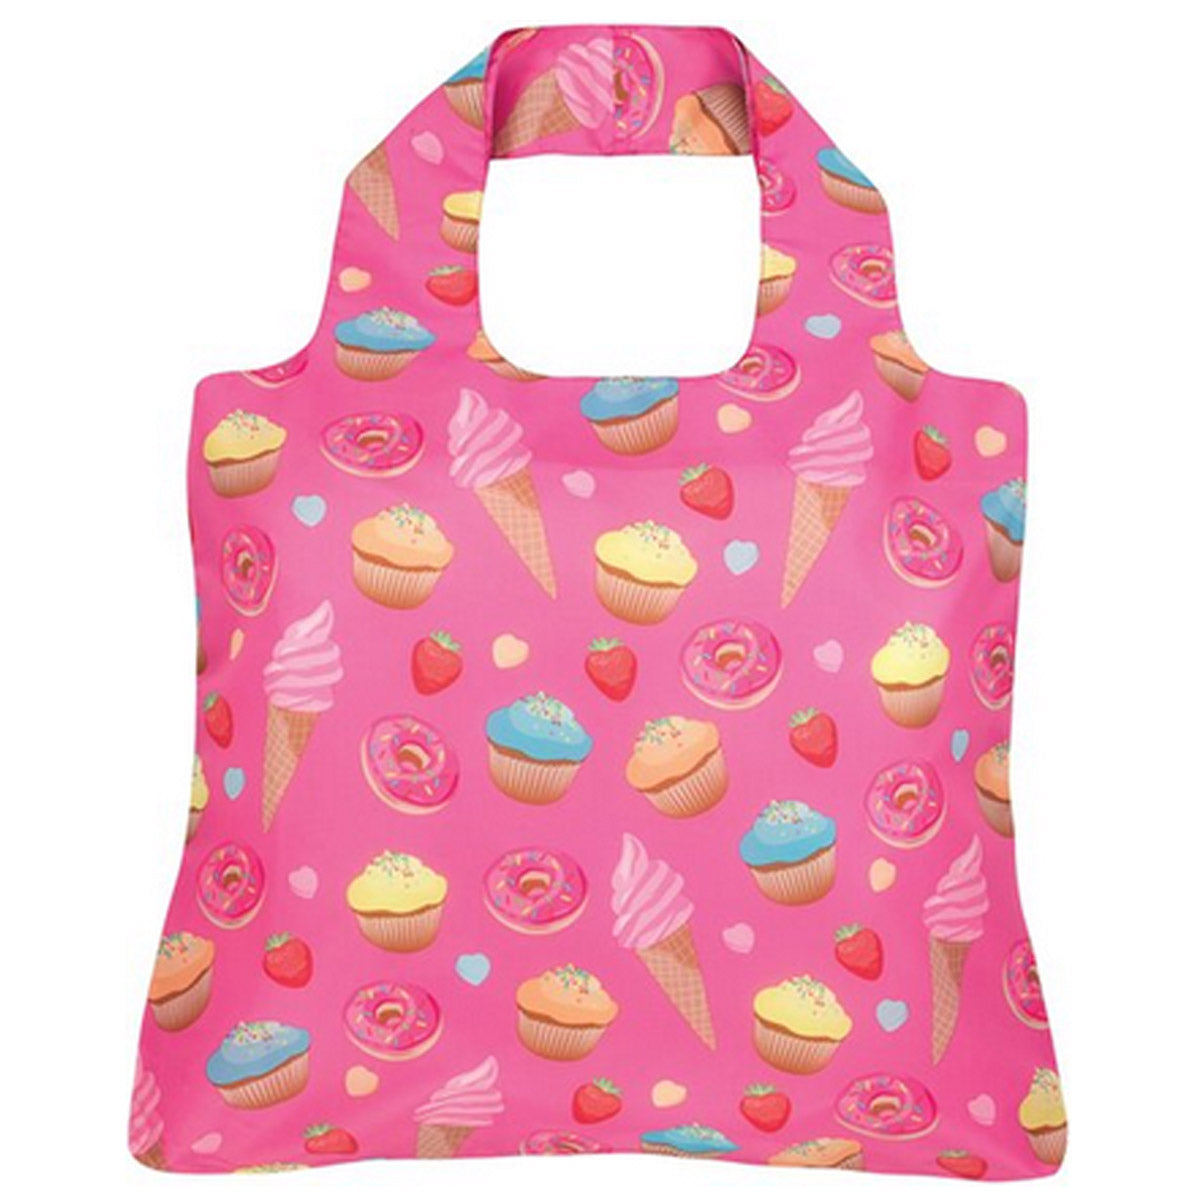 Envirosax Kids Sweet Treats Reusable Shopping Bag